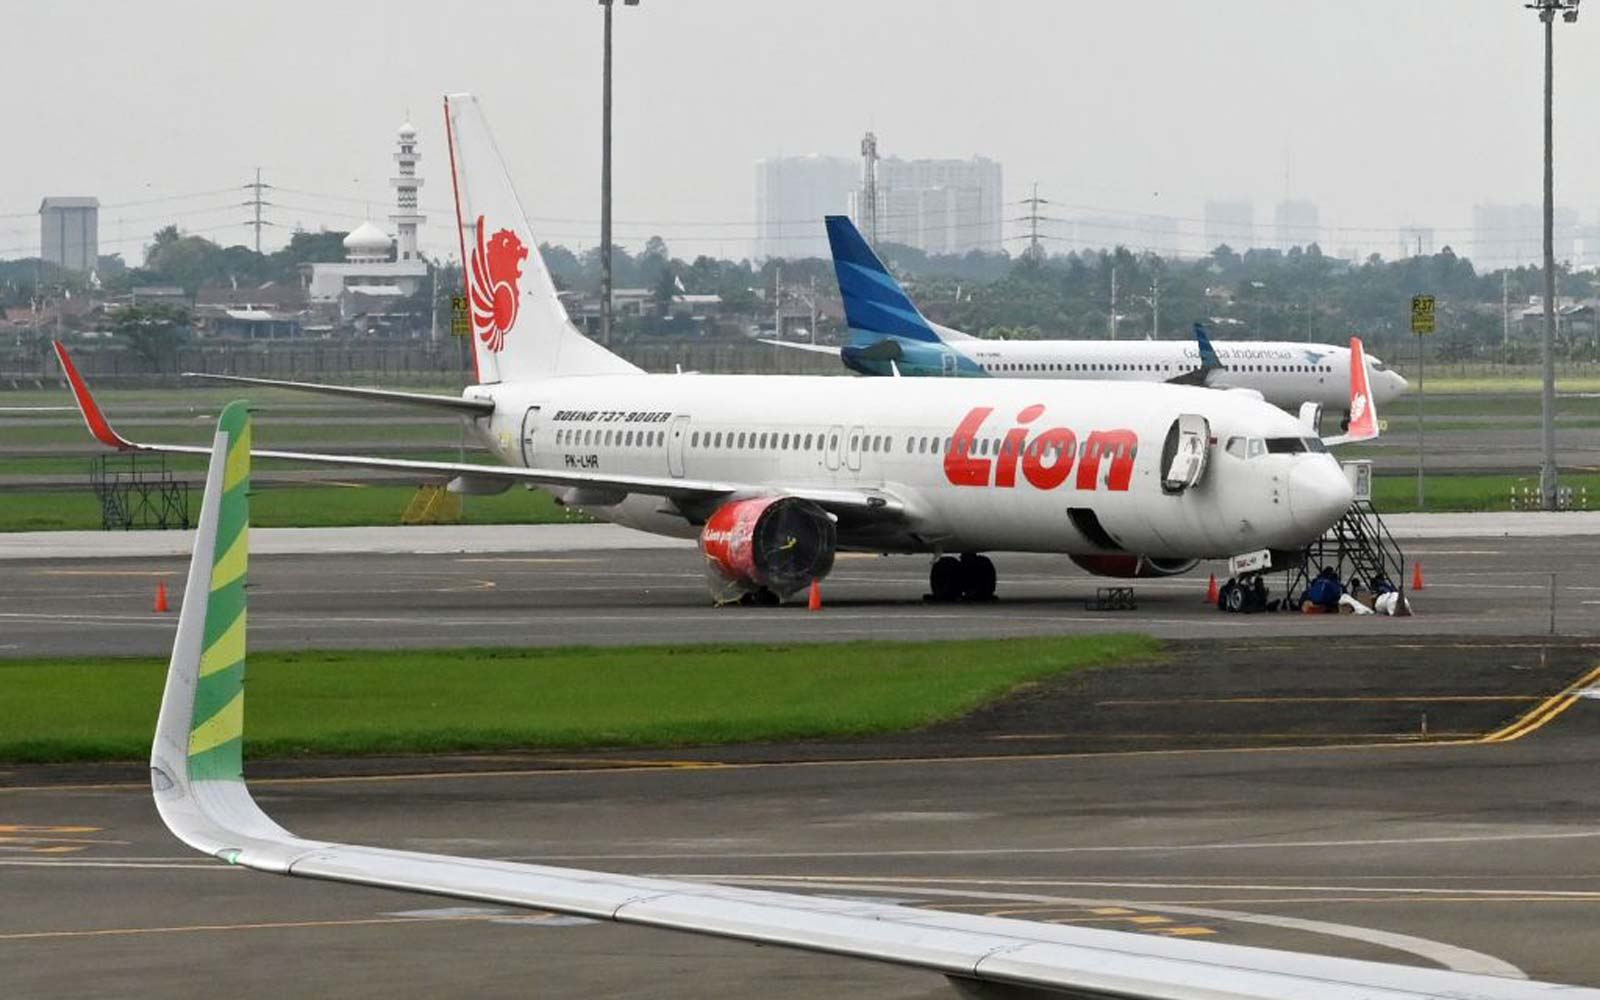 Boeing Assures Its 737 MAX Plane Is Safe to Fly One Month After Lion Air Crash